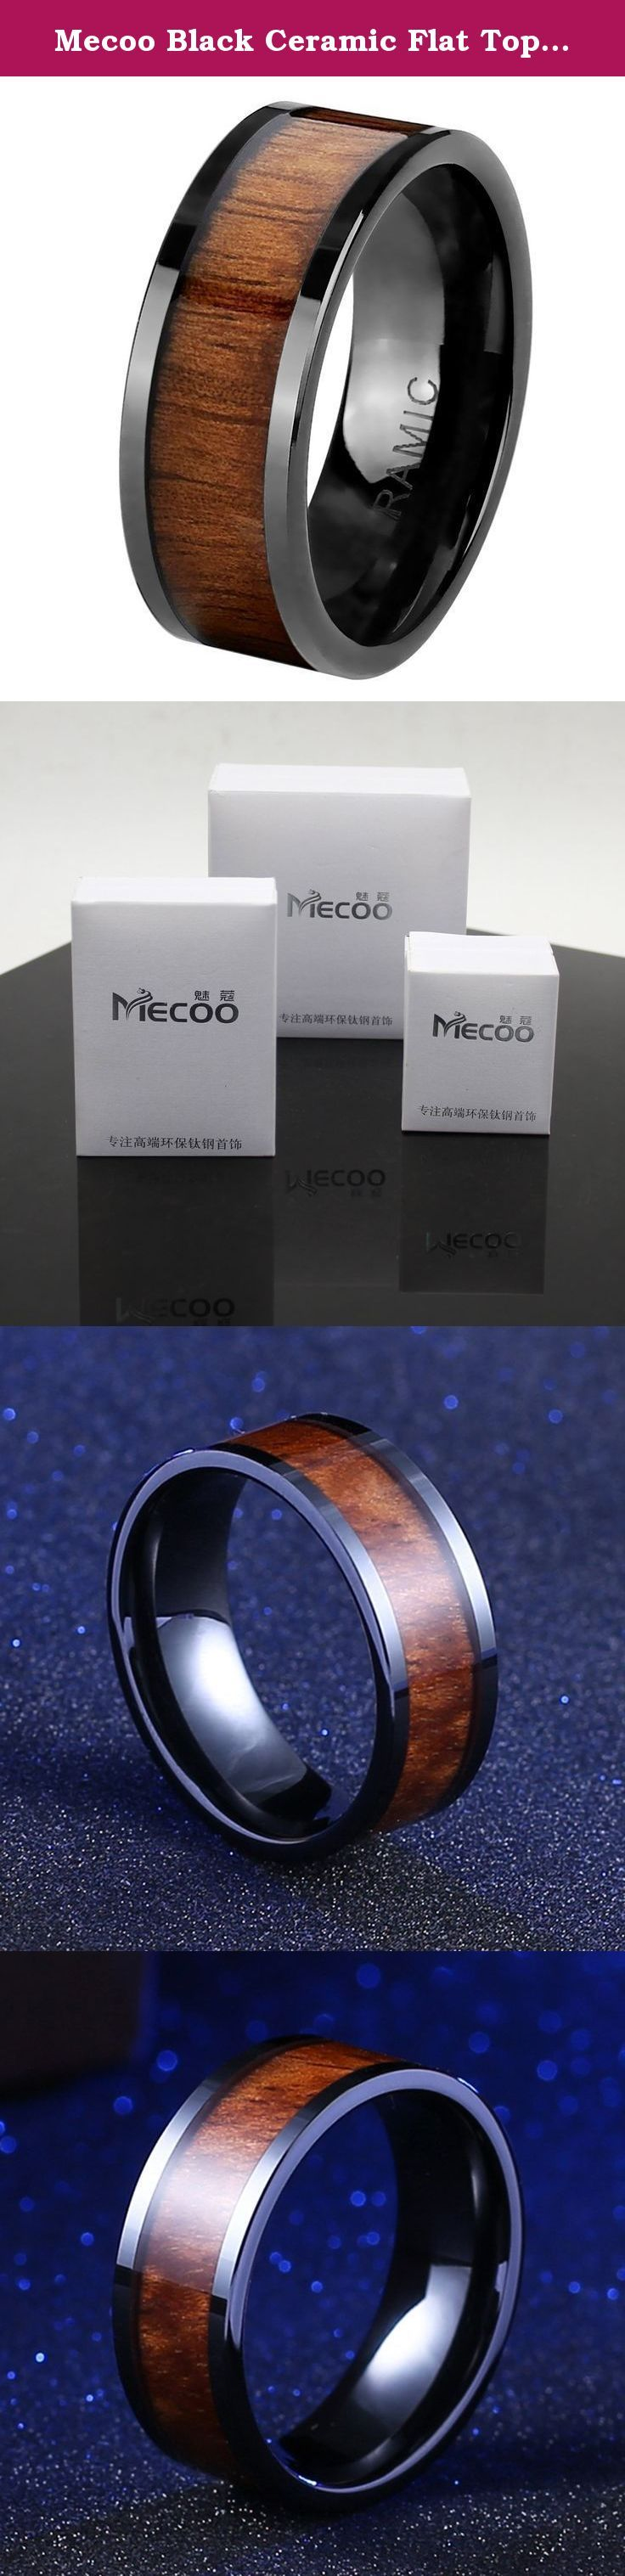 Mecoo Black Ceramic Flat Top Wedding Band Ring with Real Koa Wood Inlay Rings for Men 9mm Comfort Fit (9). This sleek flat top wedding ring by Bonndorf is made with lightweight ceramic and is fashioned into a 9-mm band with a polished finish. The center is inlaid with real wood. Ceramic rings are lighter in weight compared to titanium and are just as scratch-resistant as tungsten carbide.